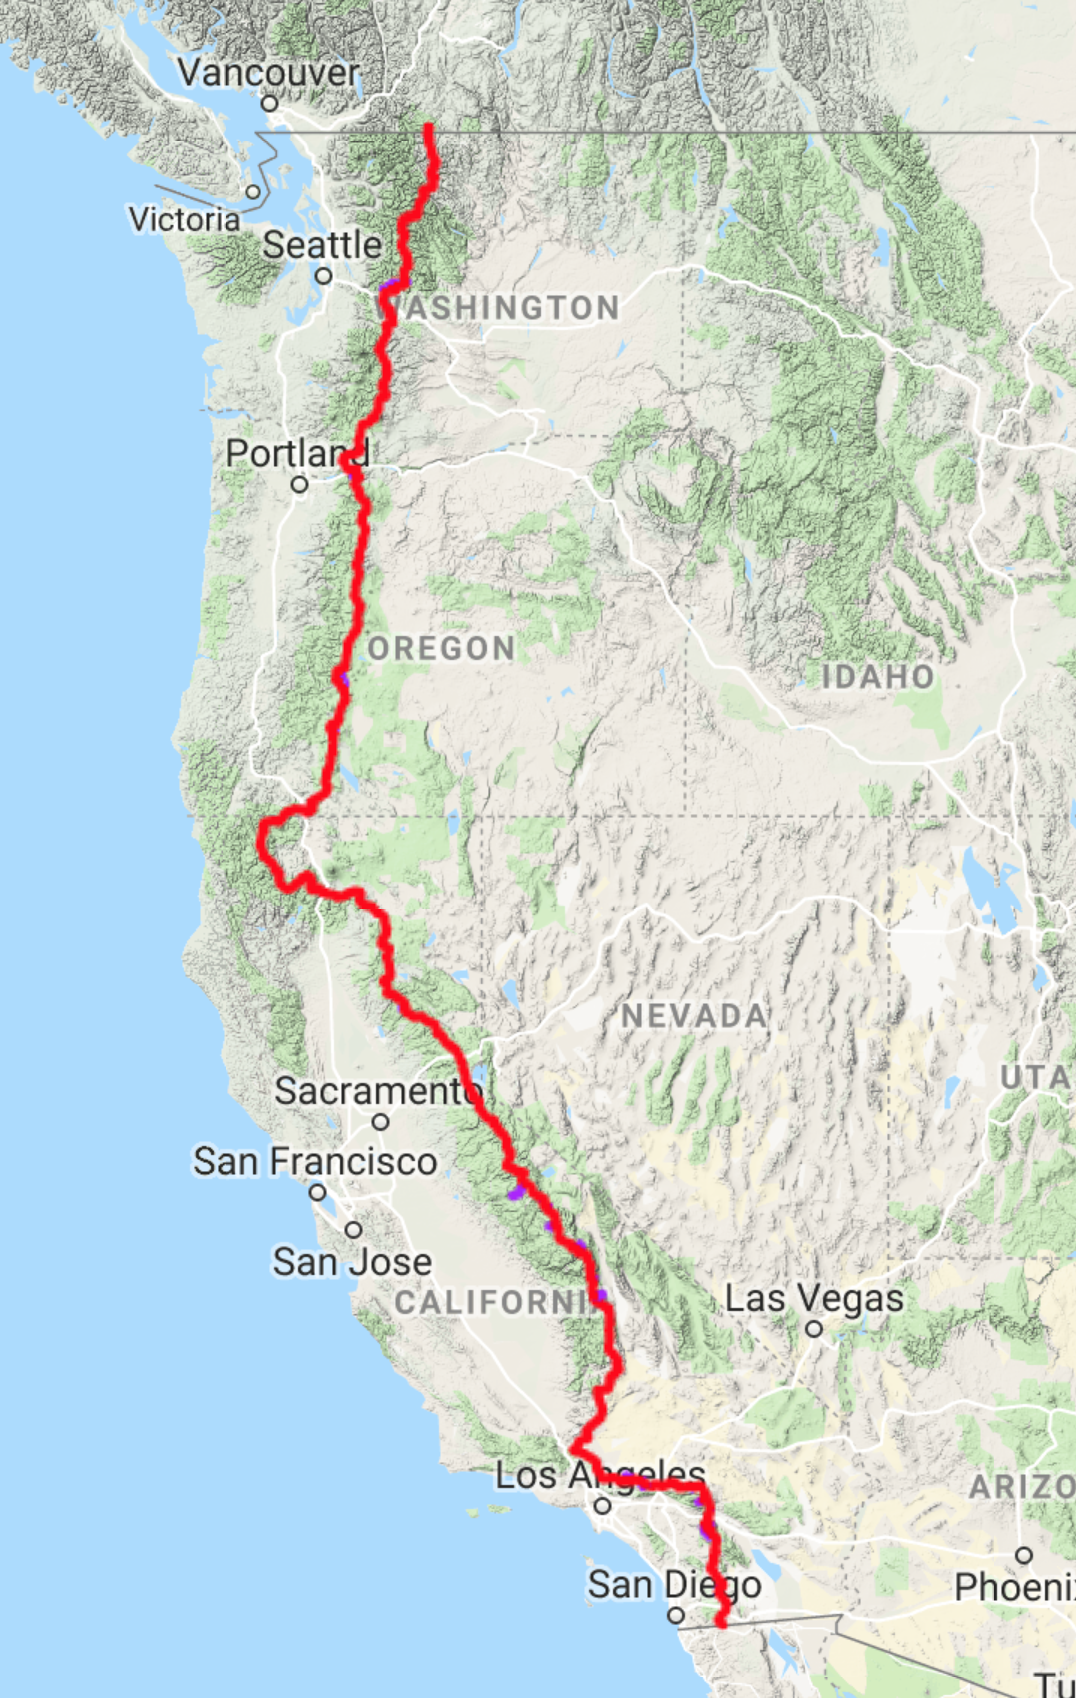 Pacific Crest Trail - • Start Point: Mexican Border• End Point: Canadian Border• Miles: 2,650• Miles of Desert: 700• States: 3• National Parks: 6• Highest Point: 13,153'• Total Ascent: 489,418'• Sasquatch Population: Unknown